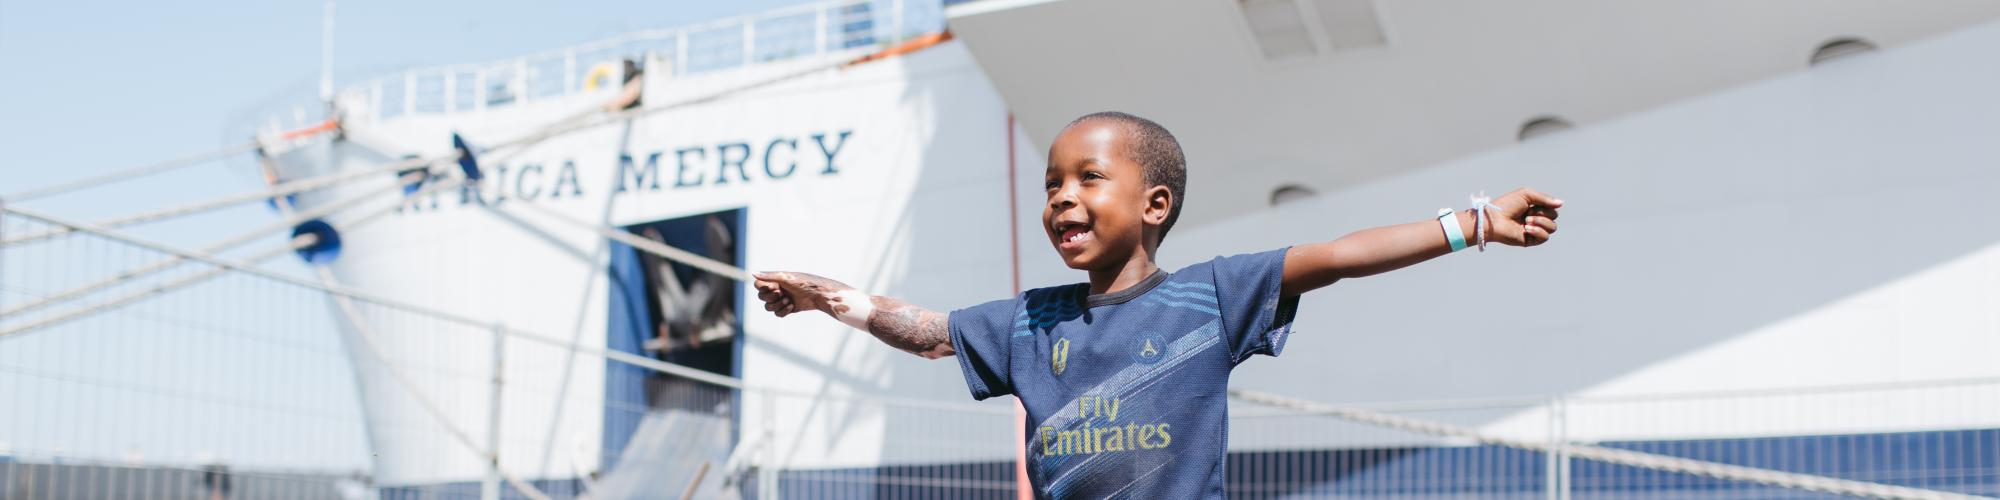 Mercy Ships Suisse